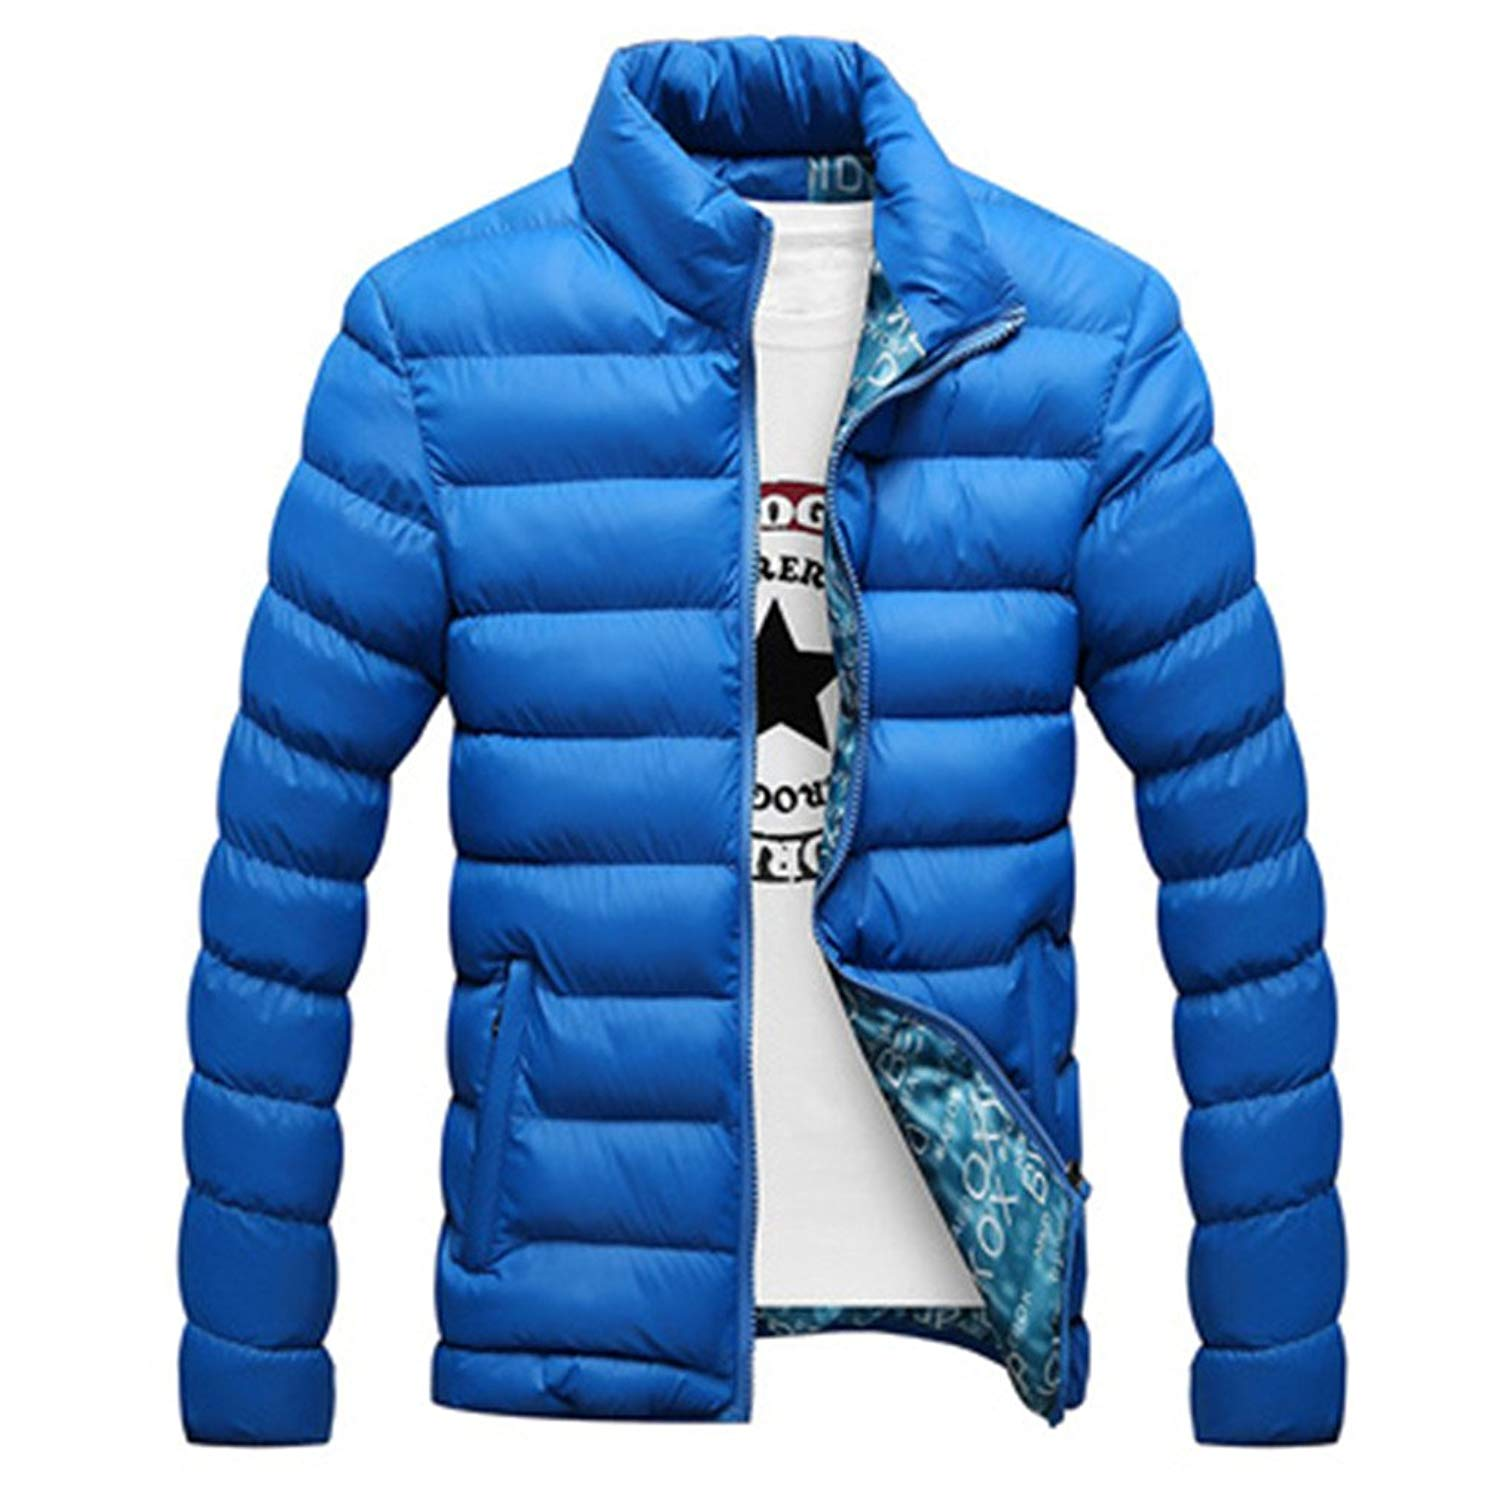 FEIYUQII Winter Jacket New Casual Mens Jackets and Coats Thick Men Outwear